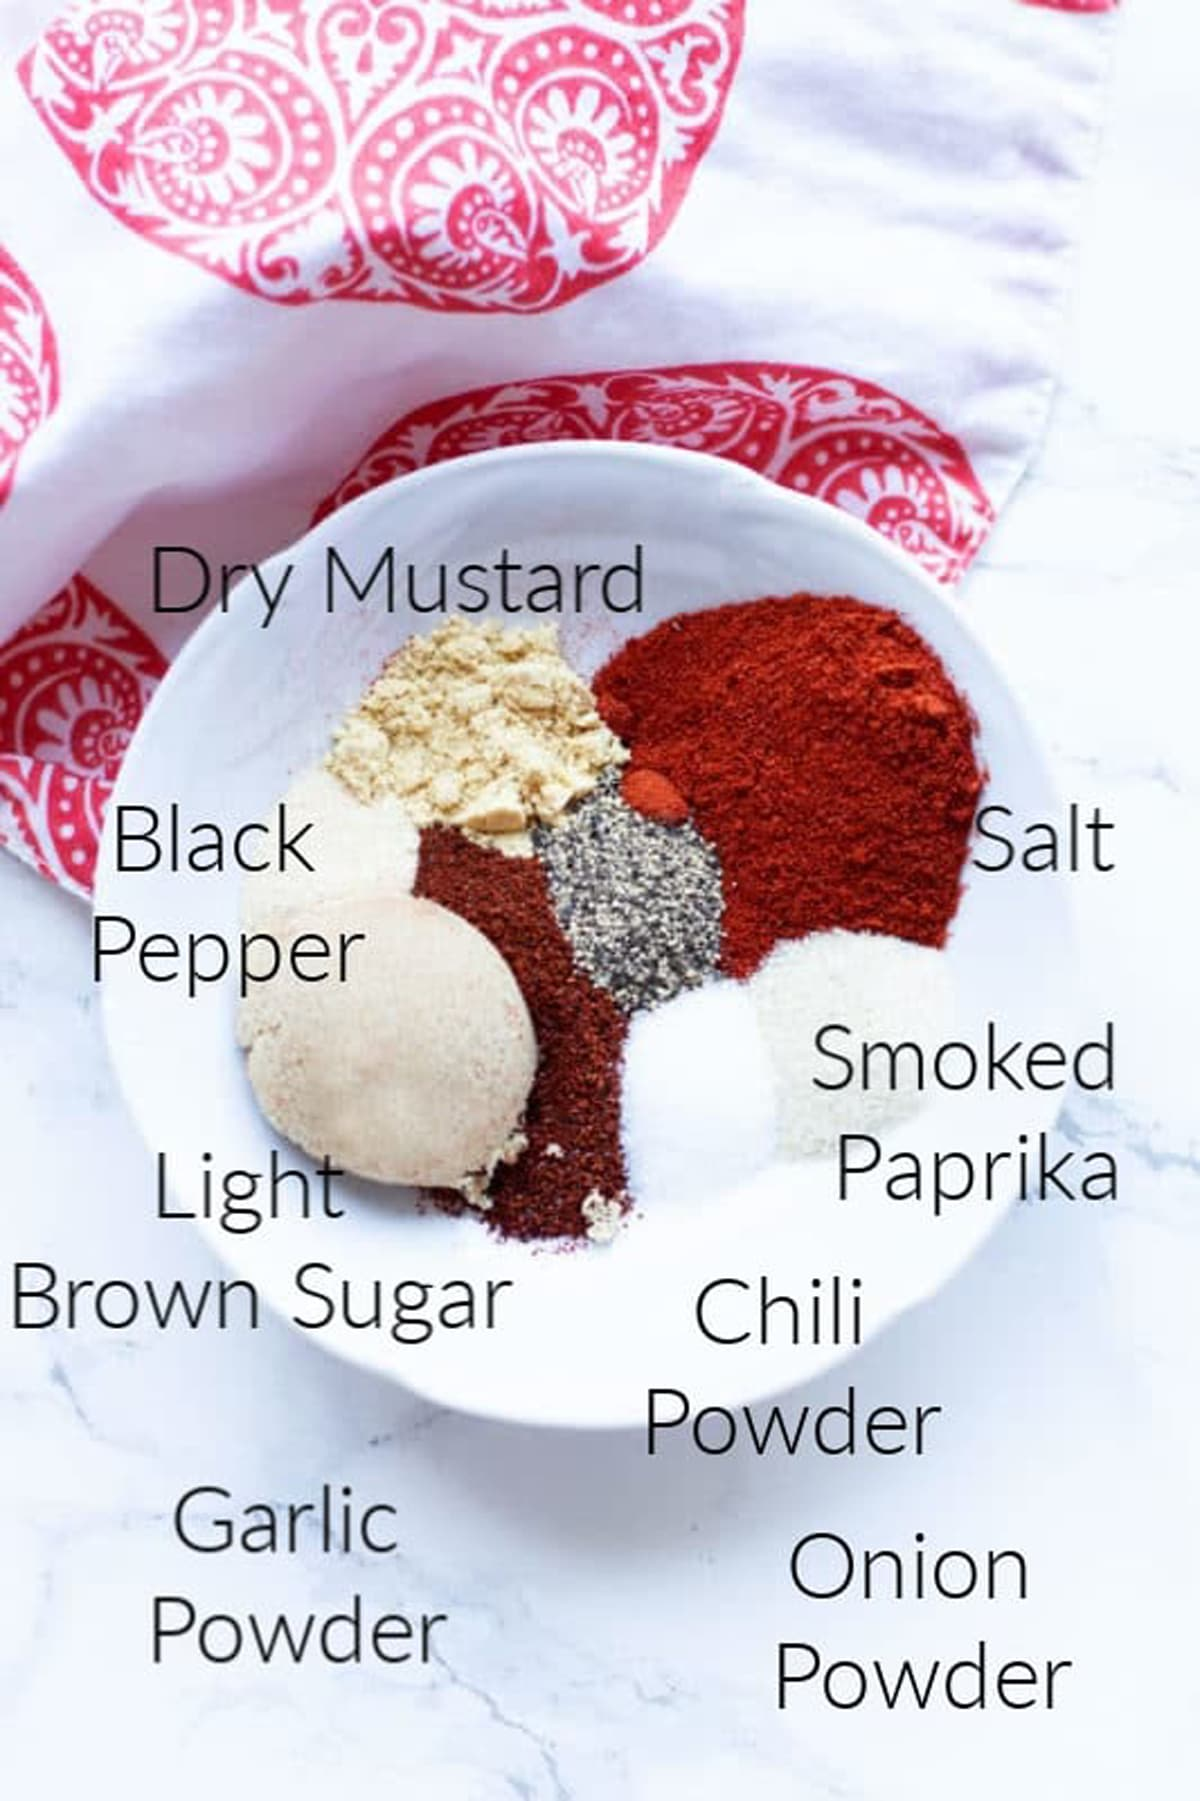 chili powder, smoked paprika, brown sugar and other spices to make a rib dry rub.